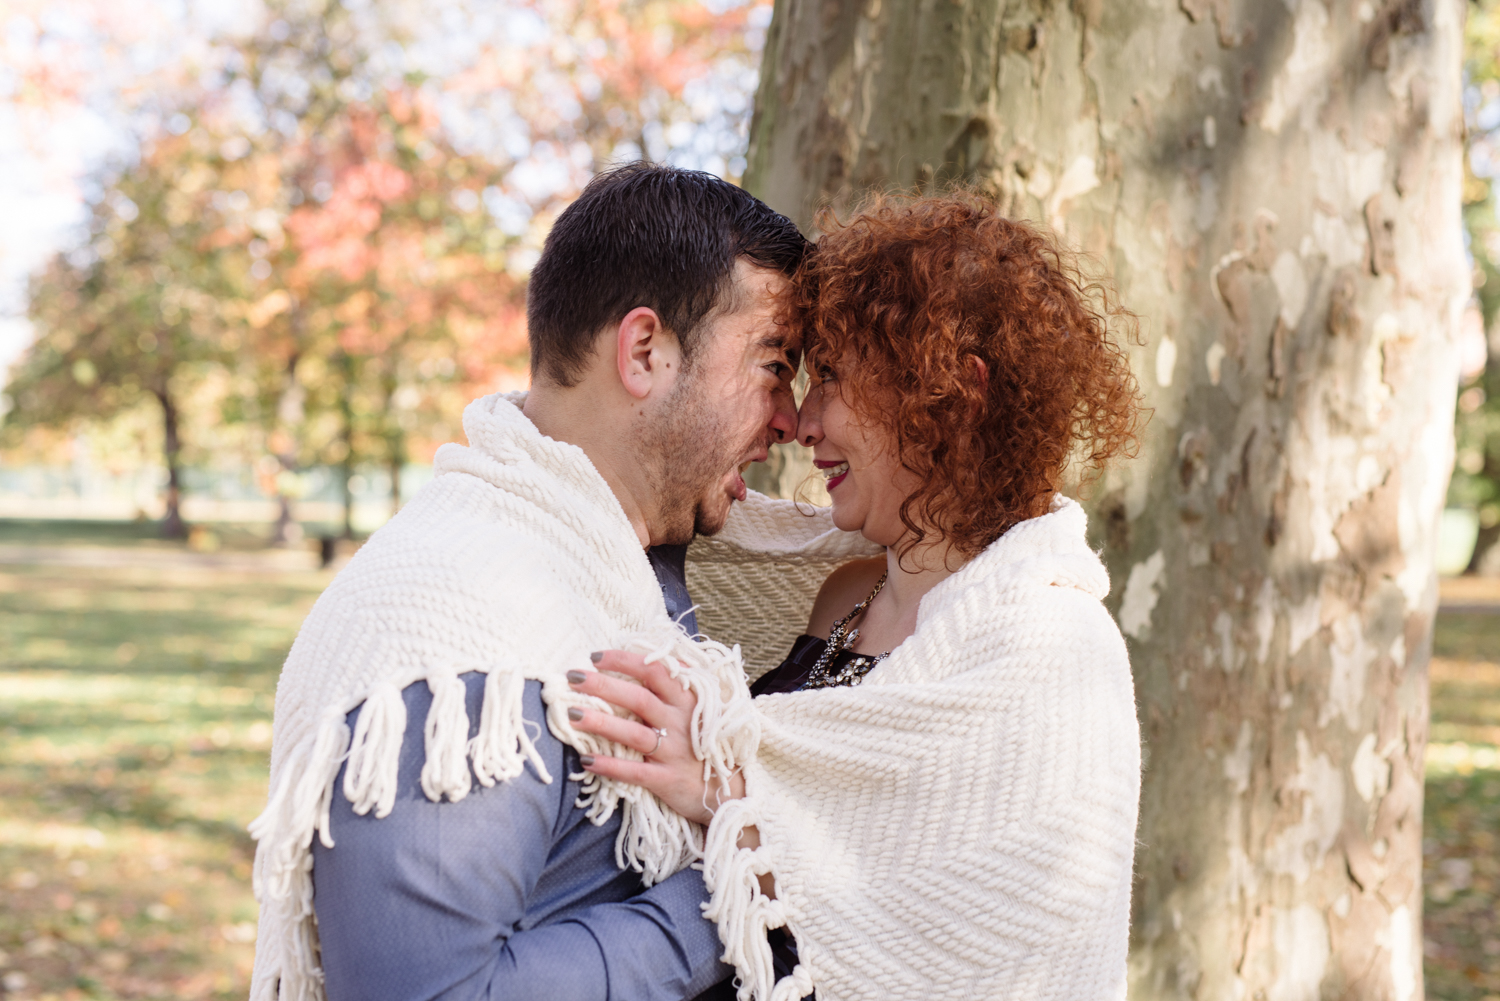 Melissa+Kenny- Watsessing Park Fall Engagement Session- Bloomfield New Jersey- Olivia Christina Photo-50.JPG